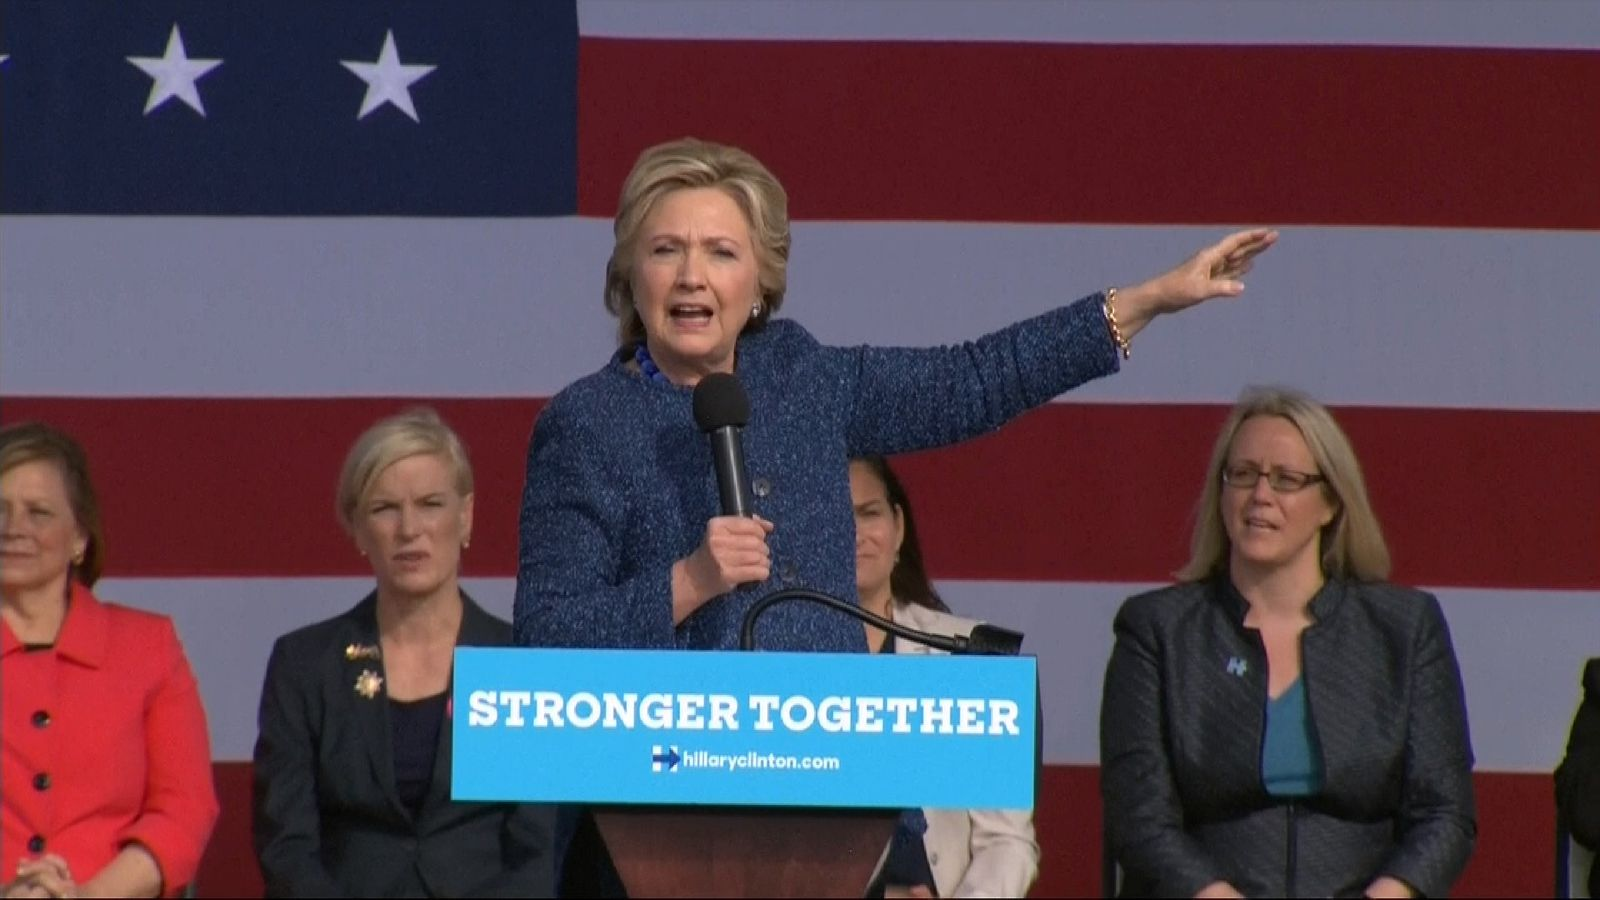 Hillary Clinton does not address FBI email investigation